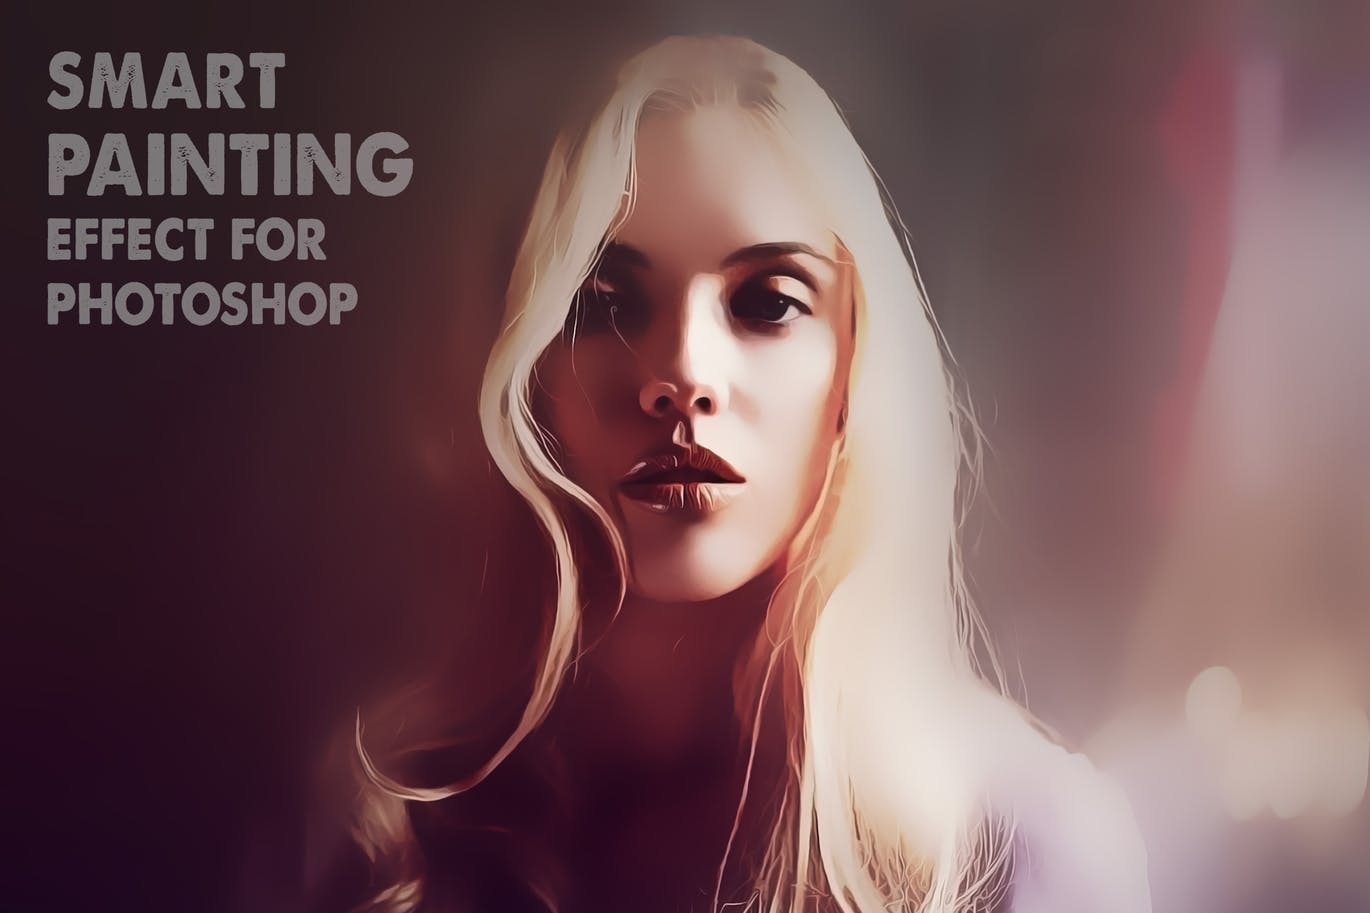 Smart Painting Effect for Photoshop